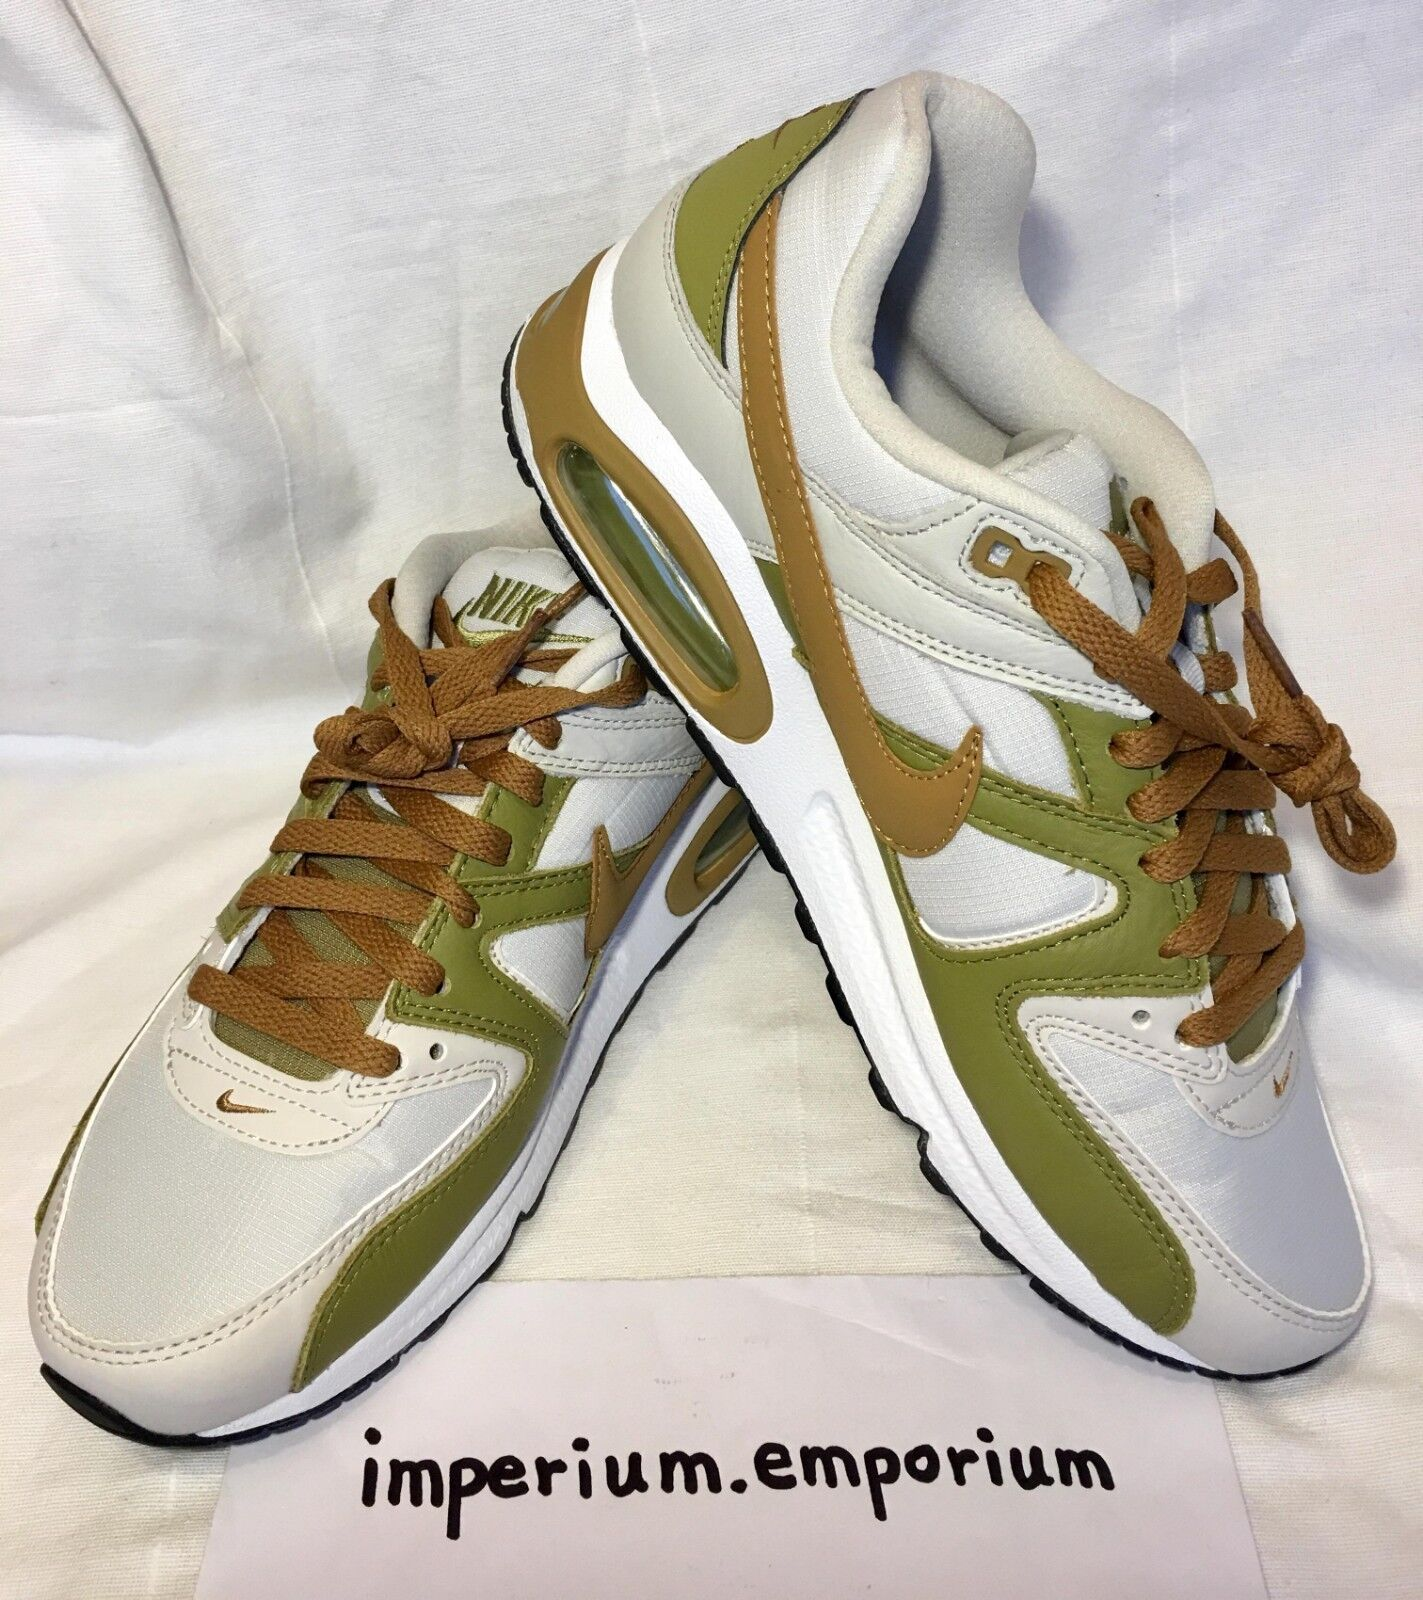 Men's Nike Air Max Command Trainers Sneakers shoes Light Bone Muted Bronze